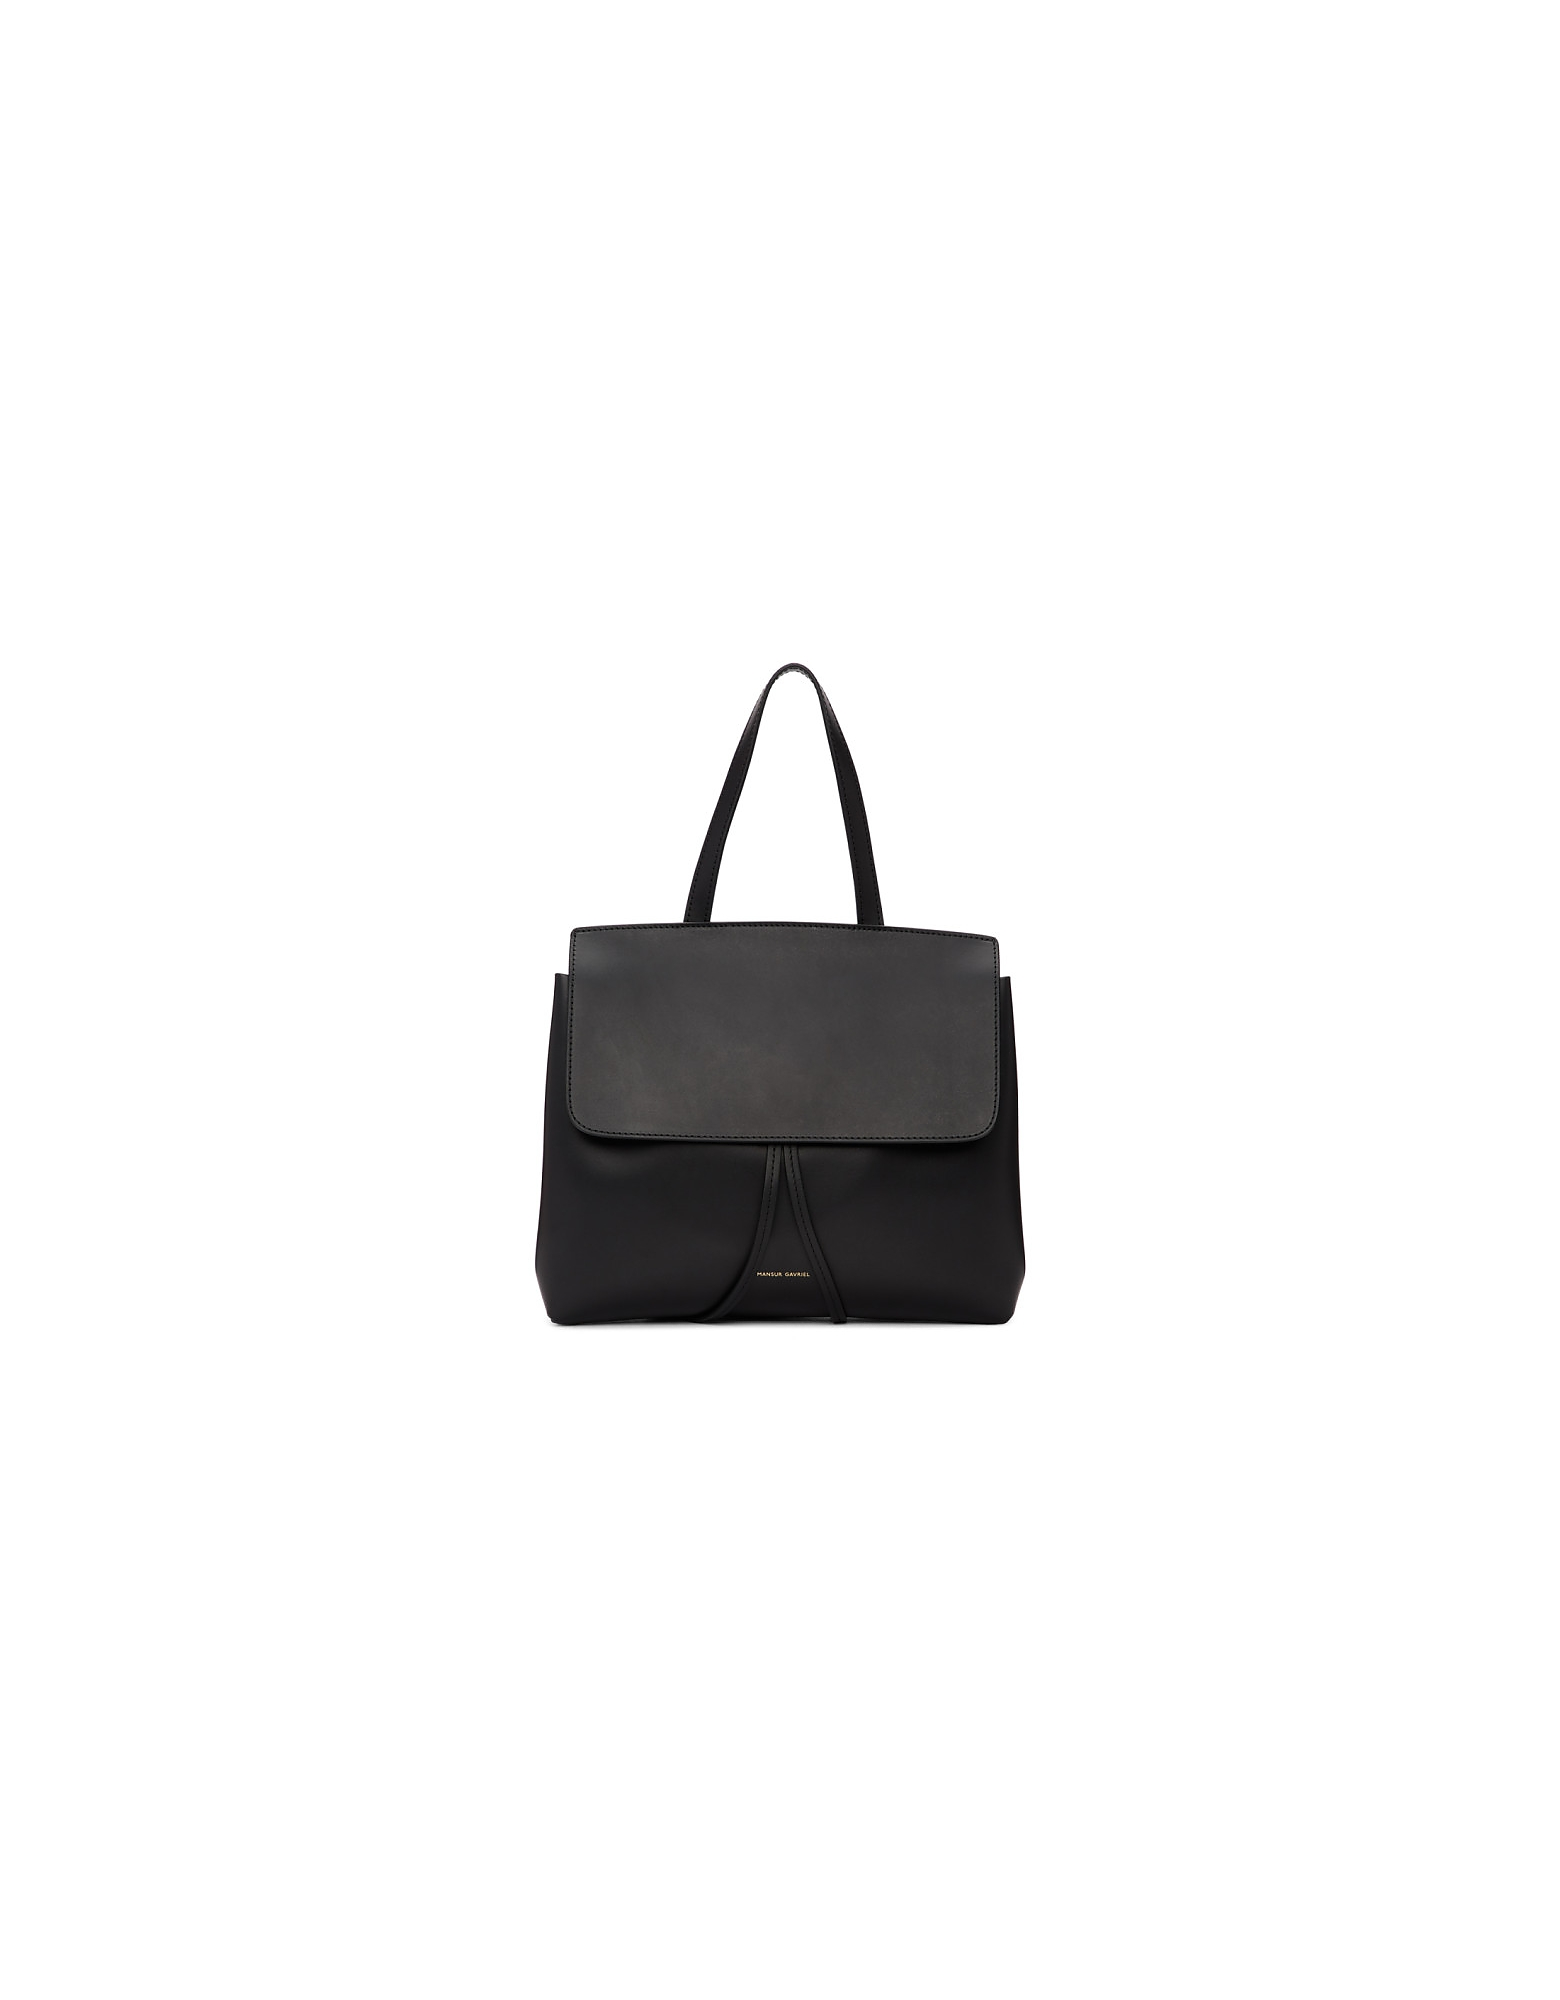 Mansur Gavriel Designer Handbags, Black Mini Lady Bag